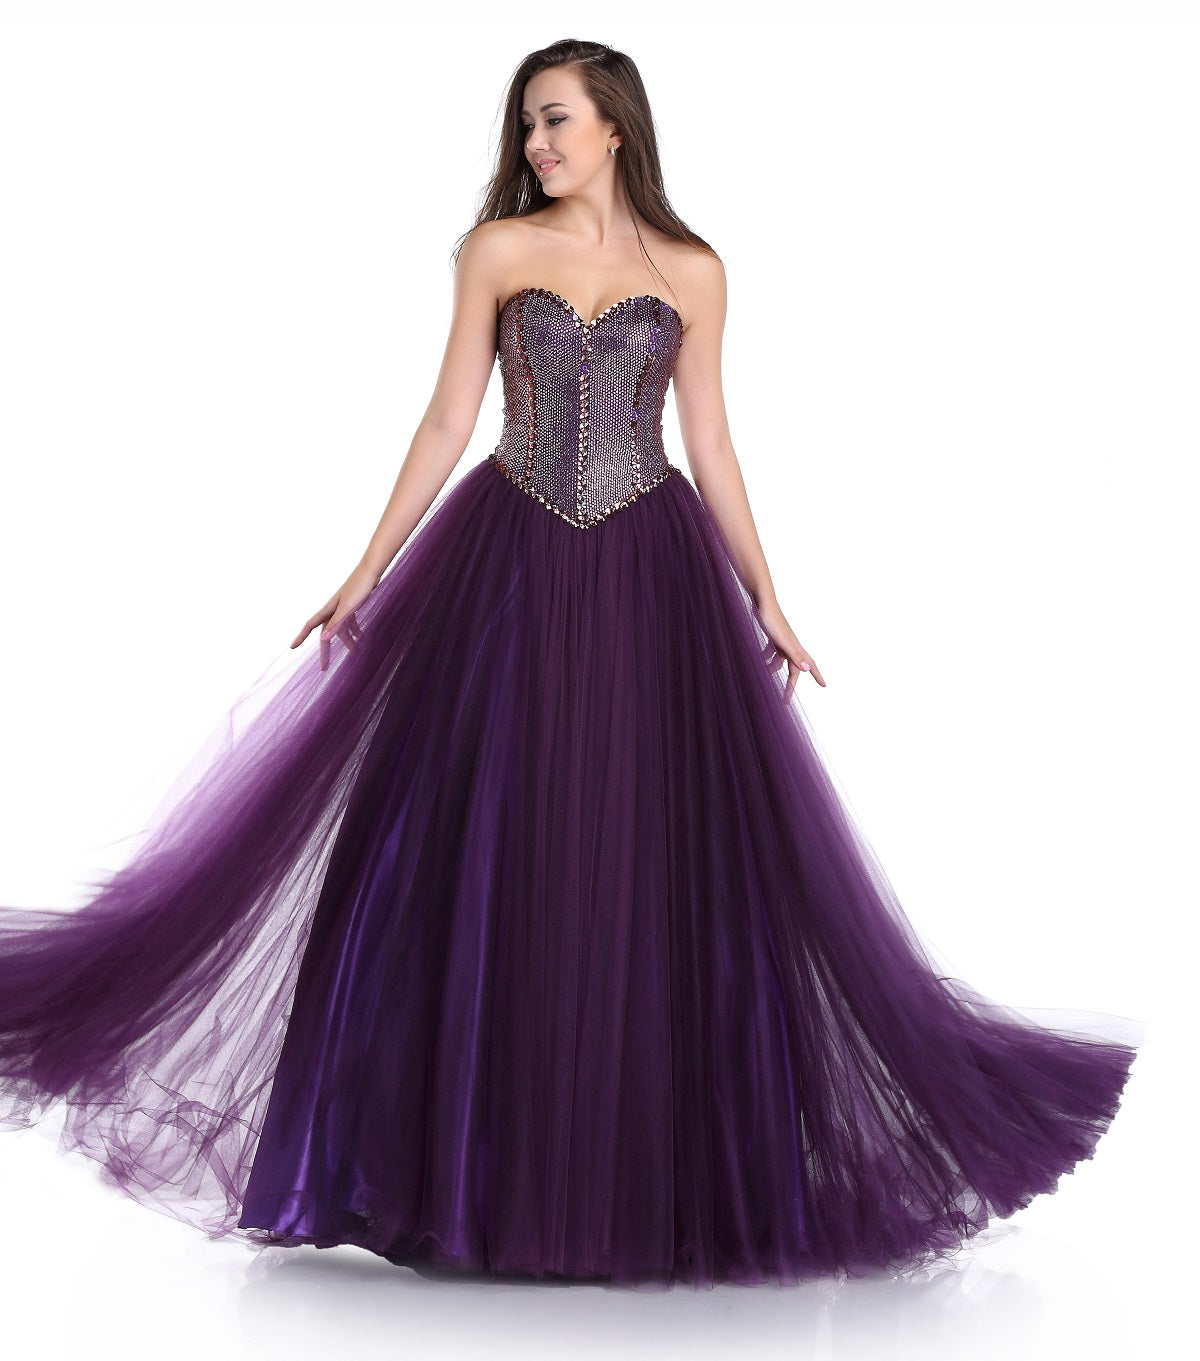 Strapless Sweetheart Fit To Flare Beaded Bodice Purple Prom Gown 71589